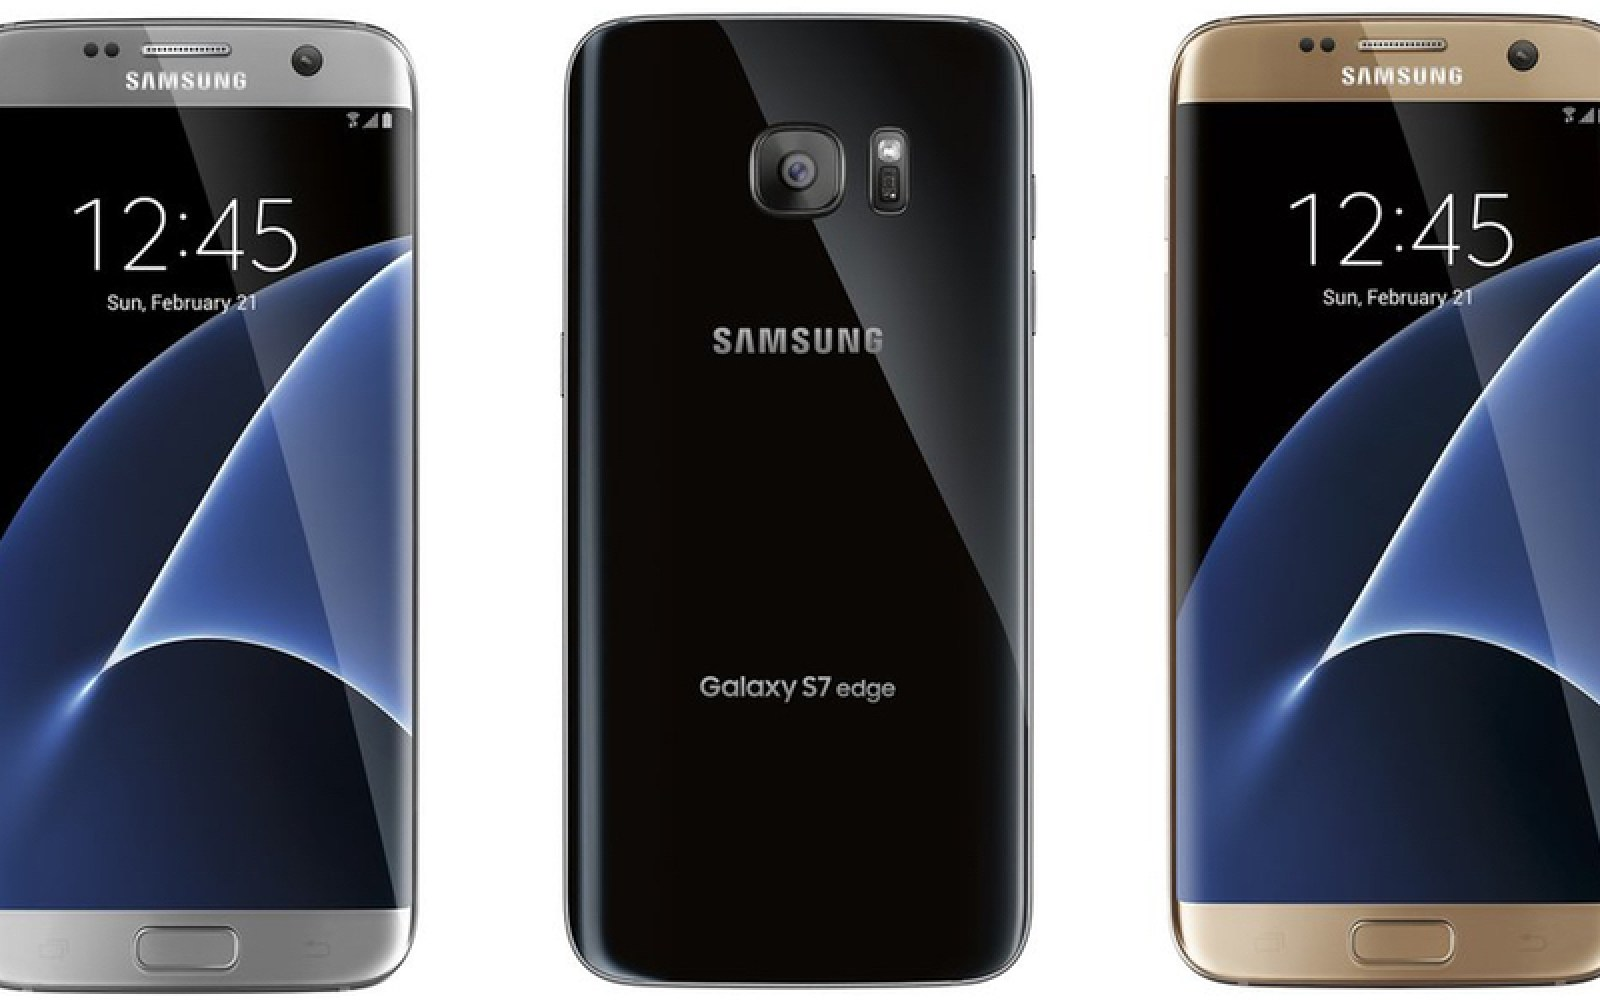 Latest Galaxy S7 and S7 Edge press render leak shows off classy black, gray and gold together